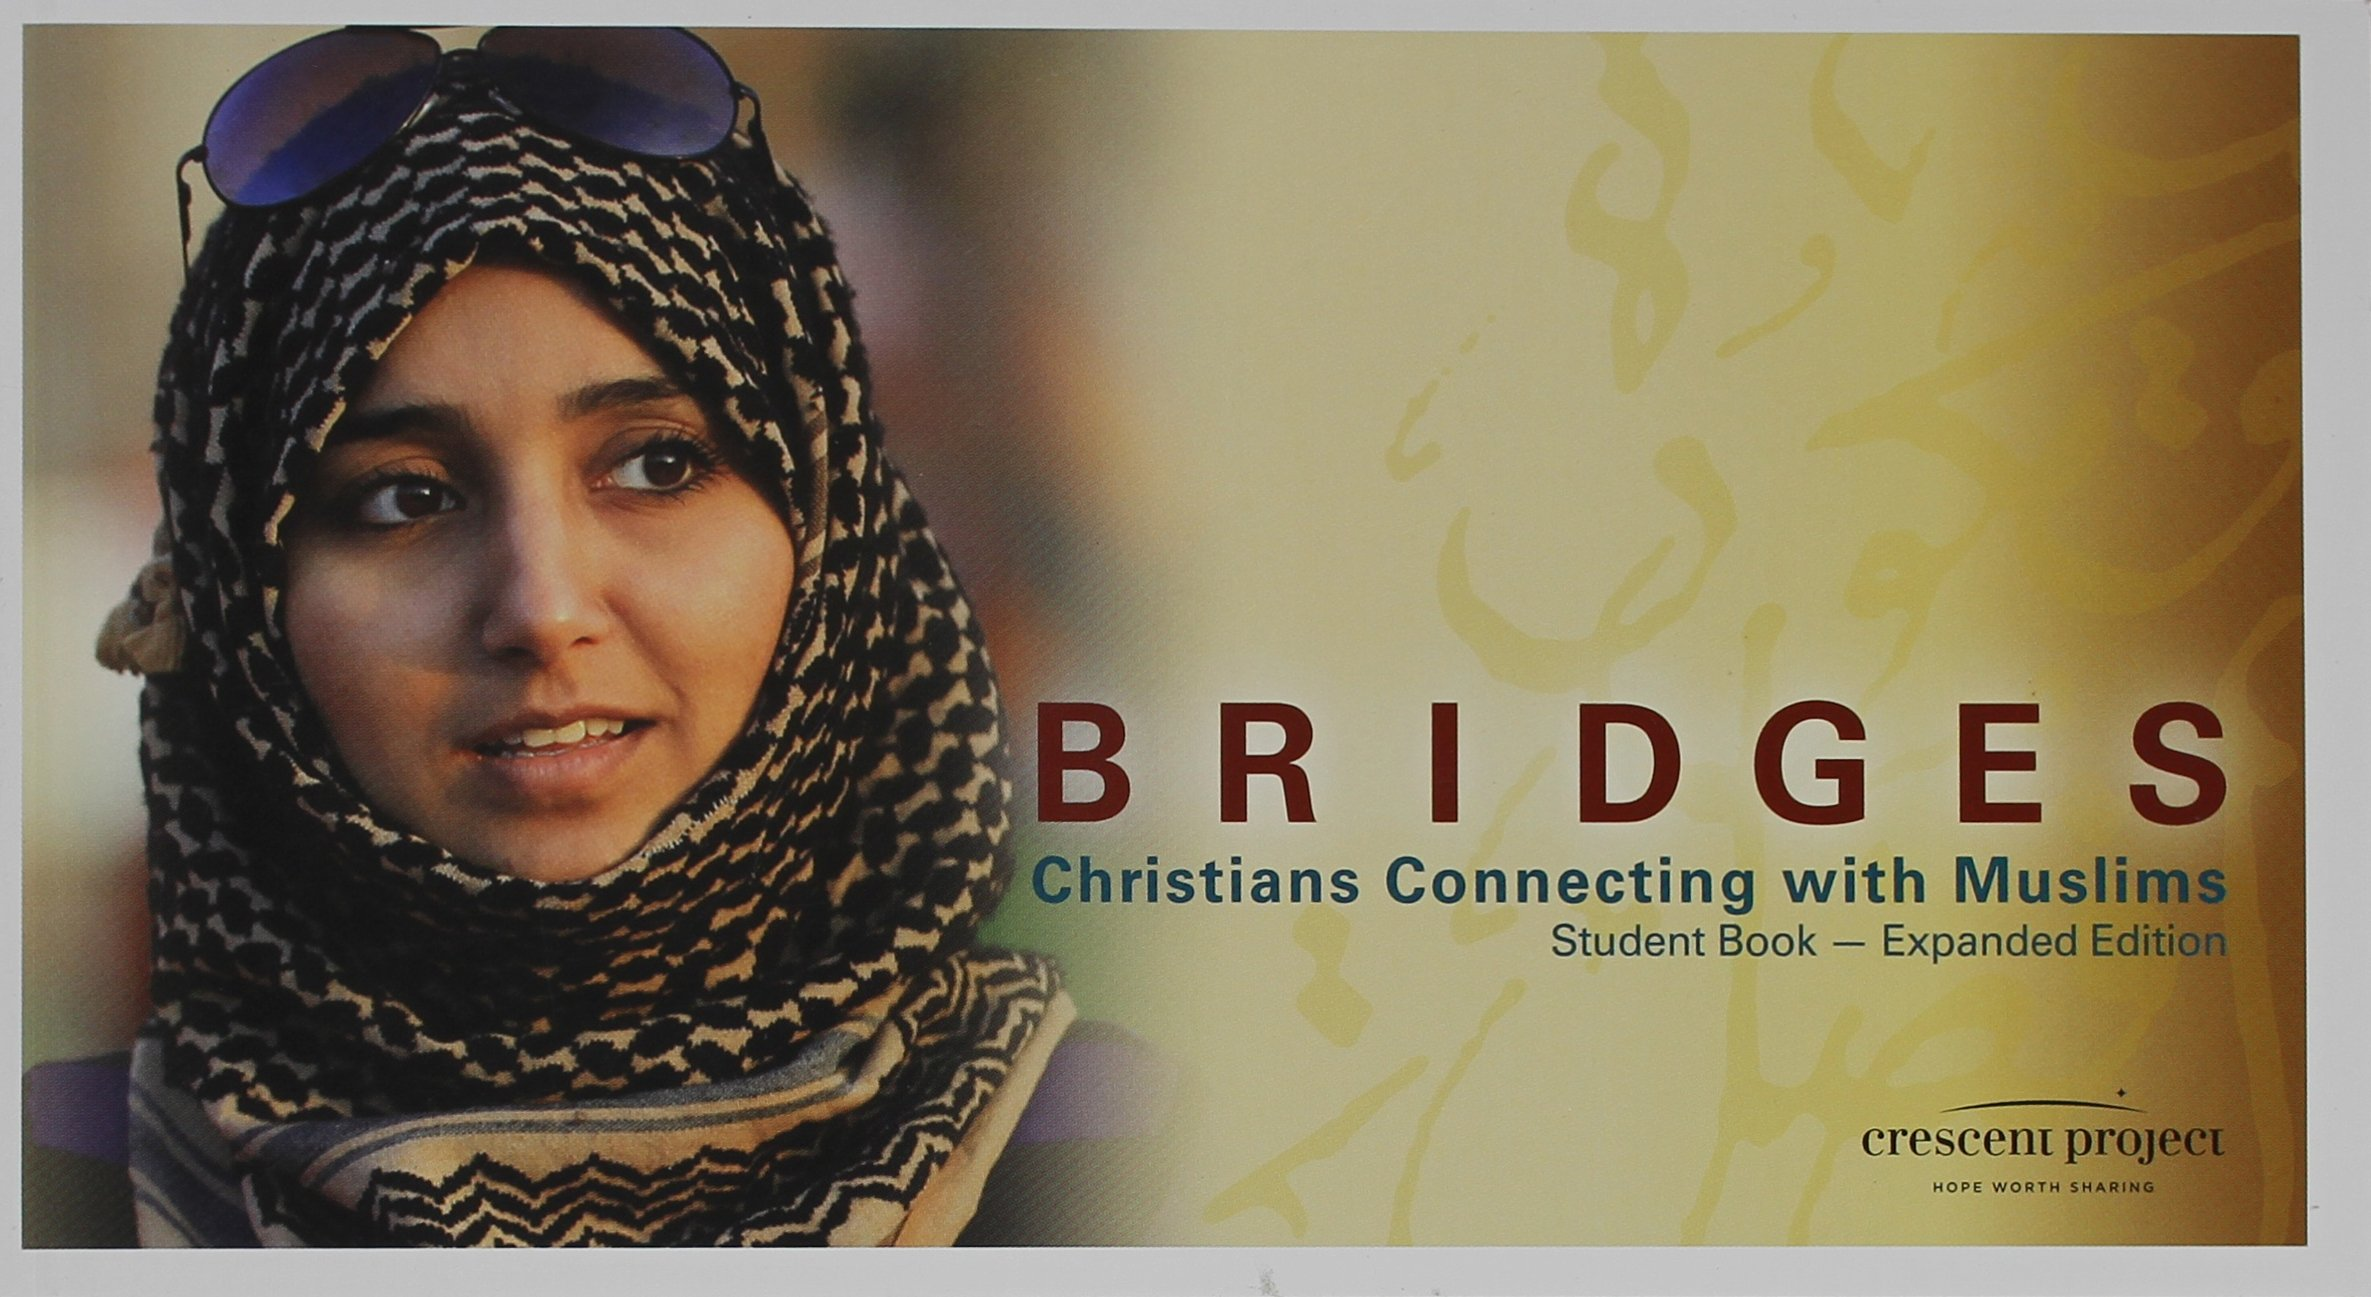 Bridges: Christians Connecting With Muslims Student Book-Expanded Edition